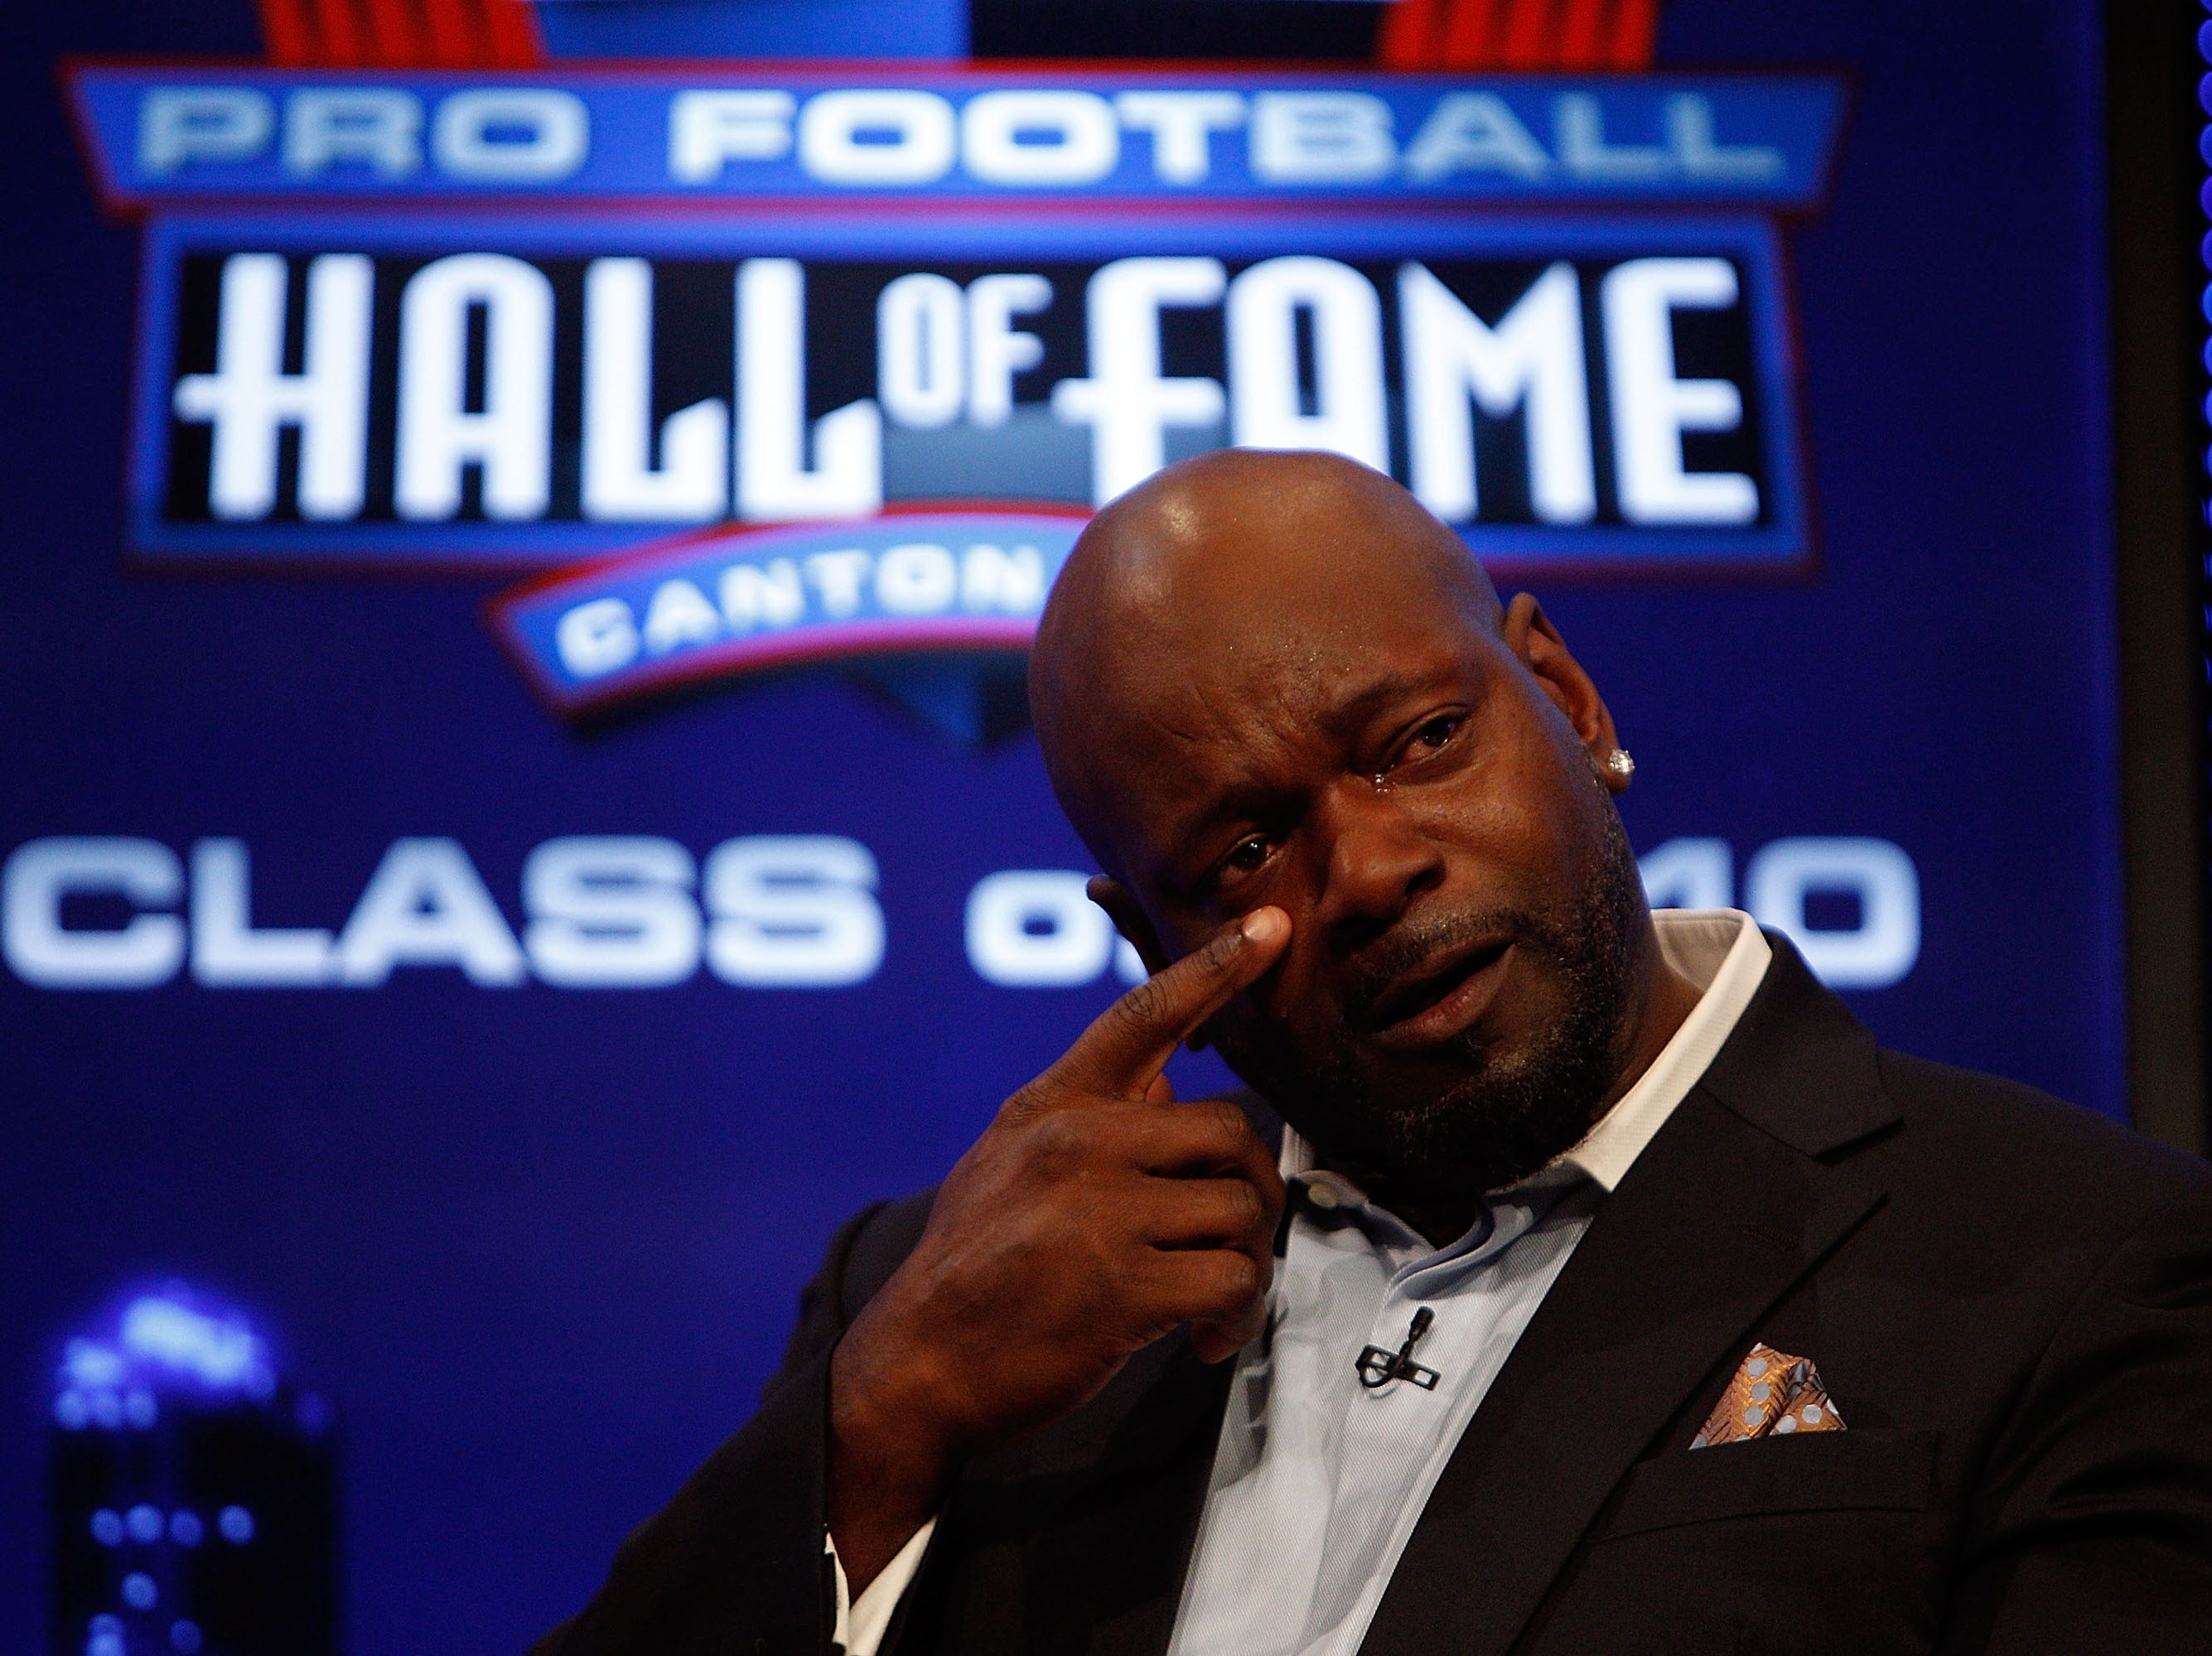 FORT LAUDERDALE, FL - FEBRUARY 06:  Emmitt Smith is overcome with emotion on stage after he was announced as one of the newest enhrinees into the Hall of Fame during the Pro Football Hall of Fame Class of 2010 Press Conference held at the Greater Ft. Lauderdale/Broward County Convention Center as part of media week for Super Bowl XLIV on February 6, 2010 in Fort Lauderdale, Florida.  (Photo by Chris Graythen/Getty Images)